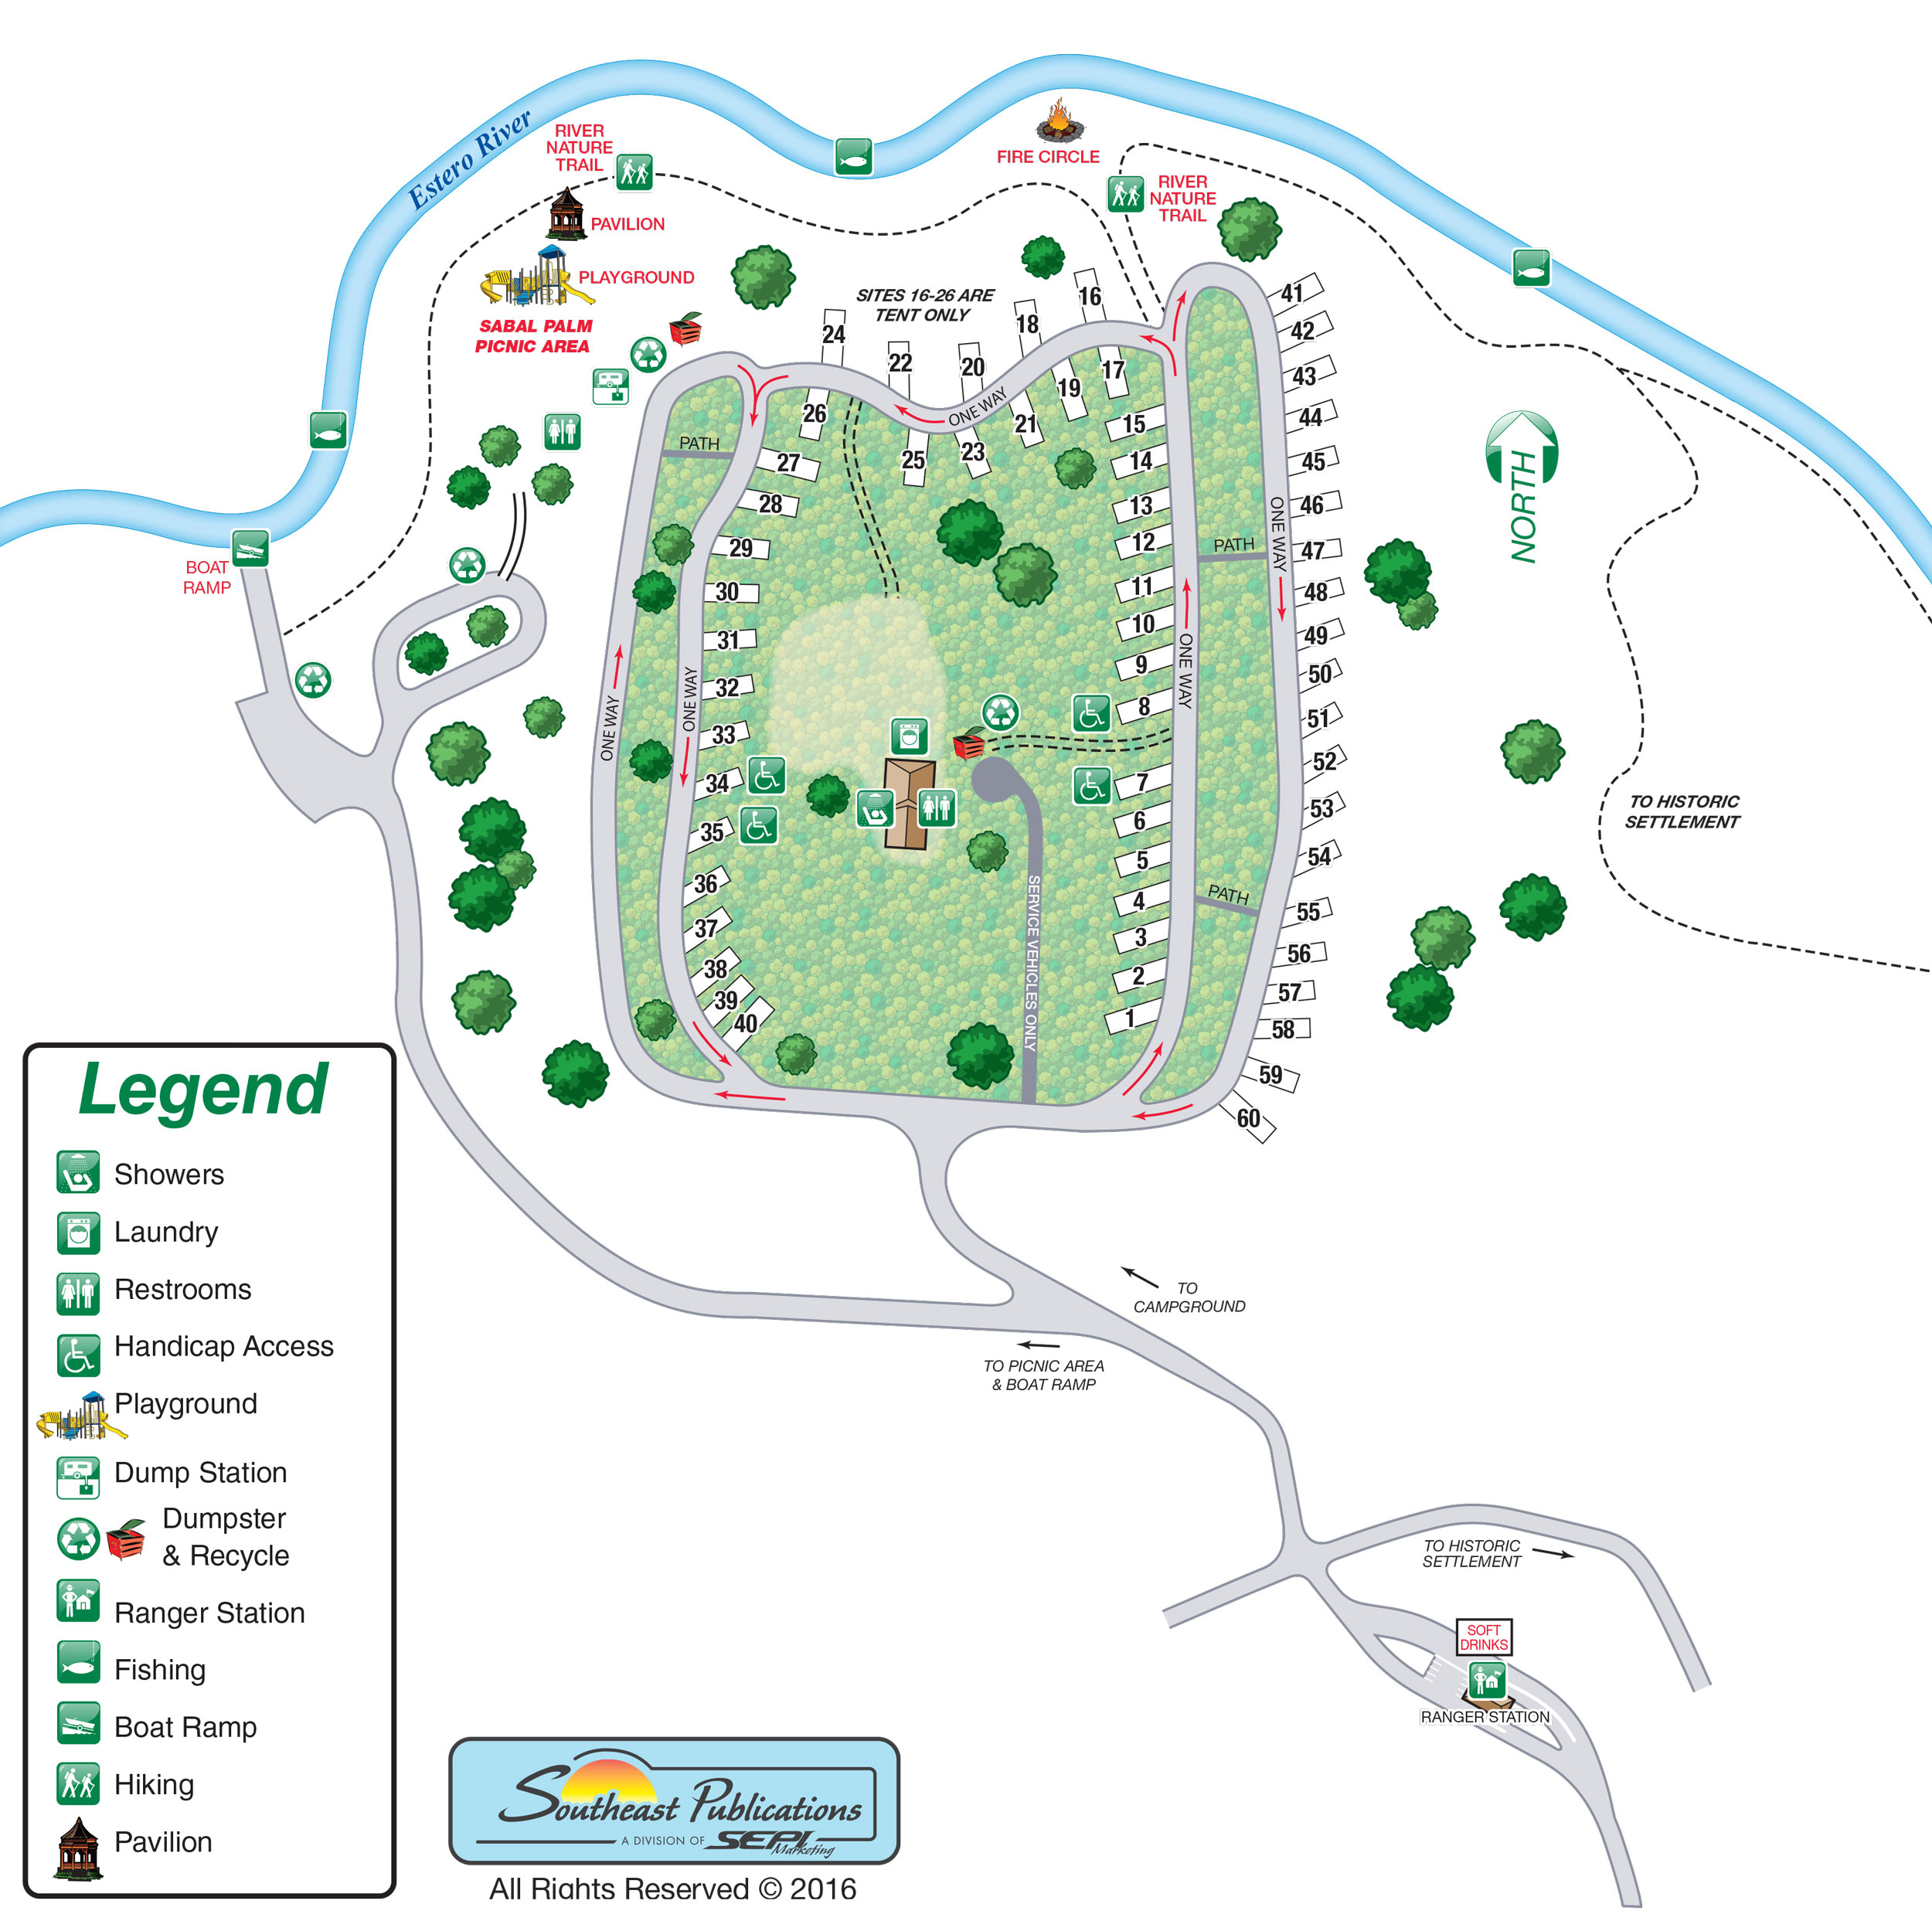 Florida State Parks Rv Camping - Know Your Campground - Camping In Florida State Parks Map